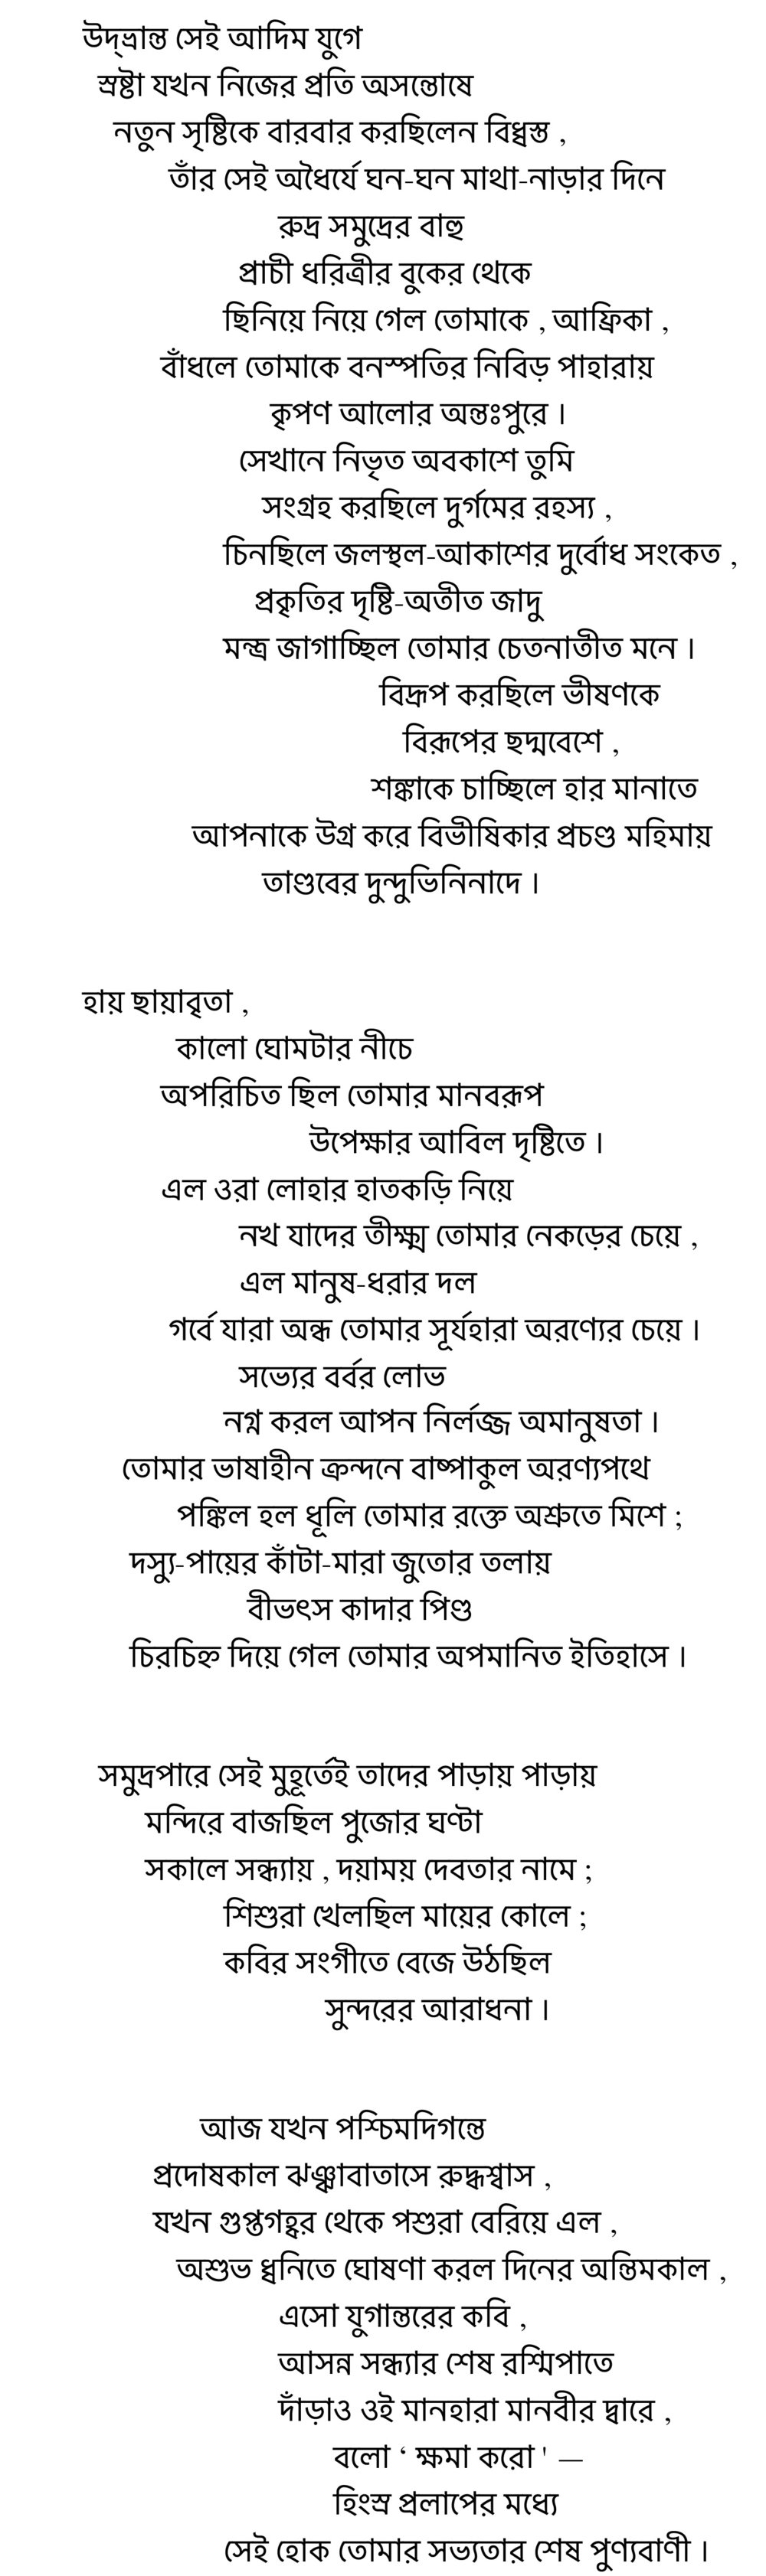 Tagore's poem  Africa  in Bengali